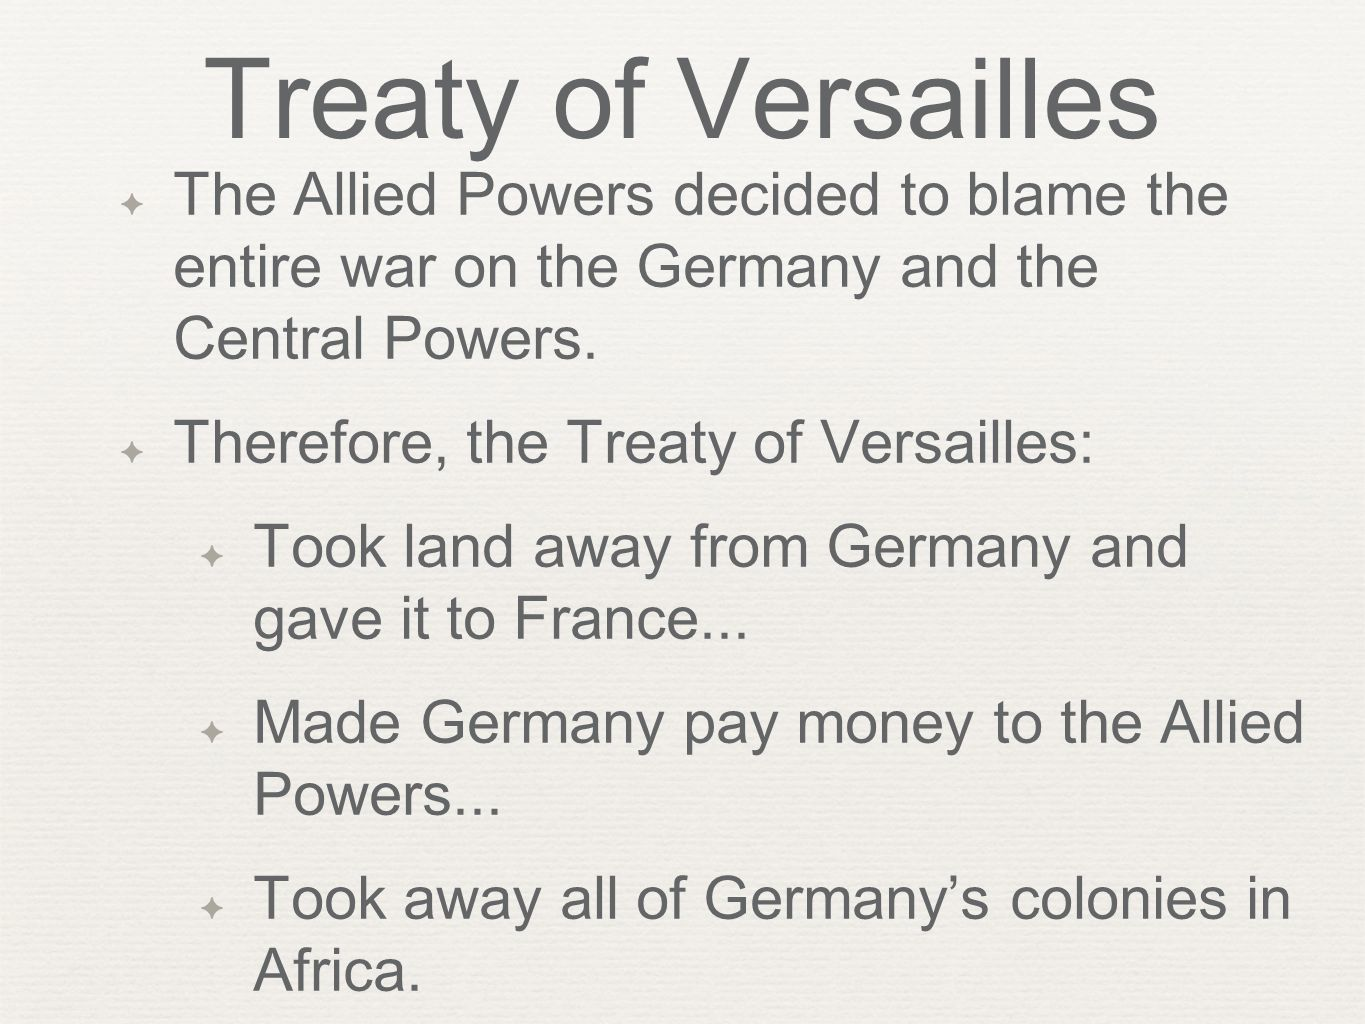 Treaty of Versailles ✦ The Allied Powers decided to blame the entire war on the Germany and the Central Powers. ✦ Therefore, the Treaty of Versailles: